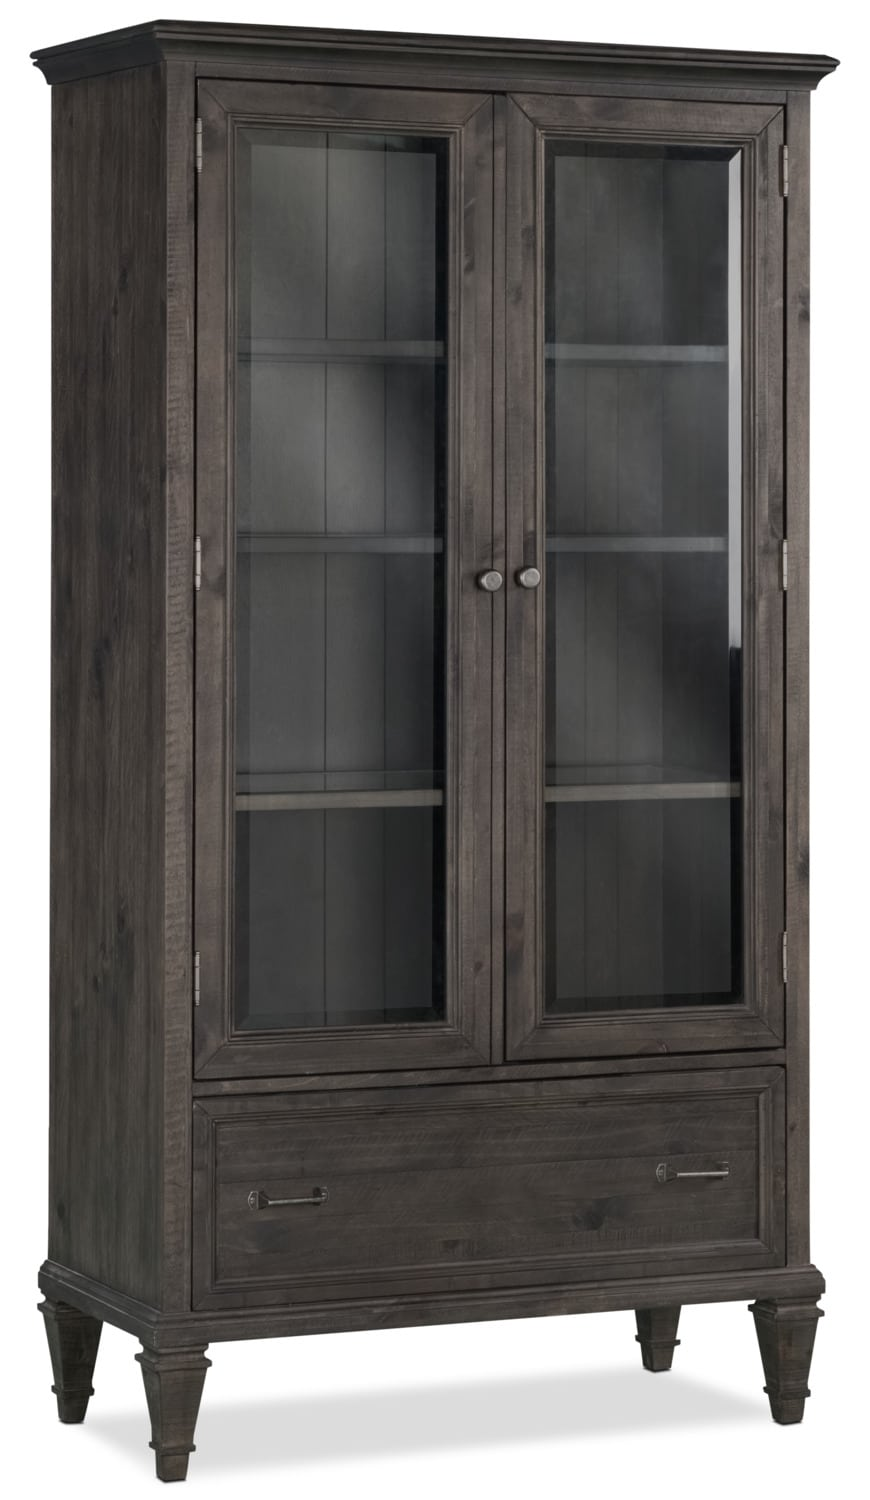 Home Office Furniture - Calistoga Bookcase with Doors